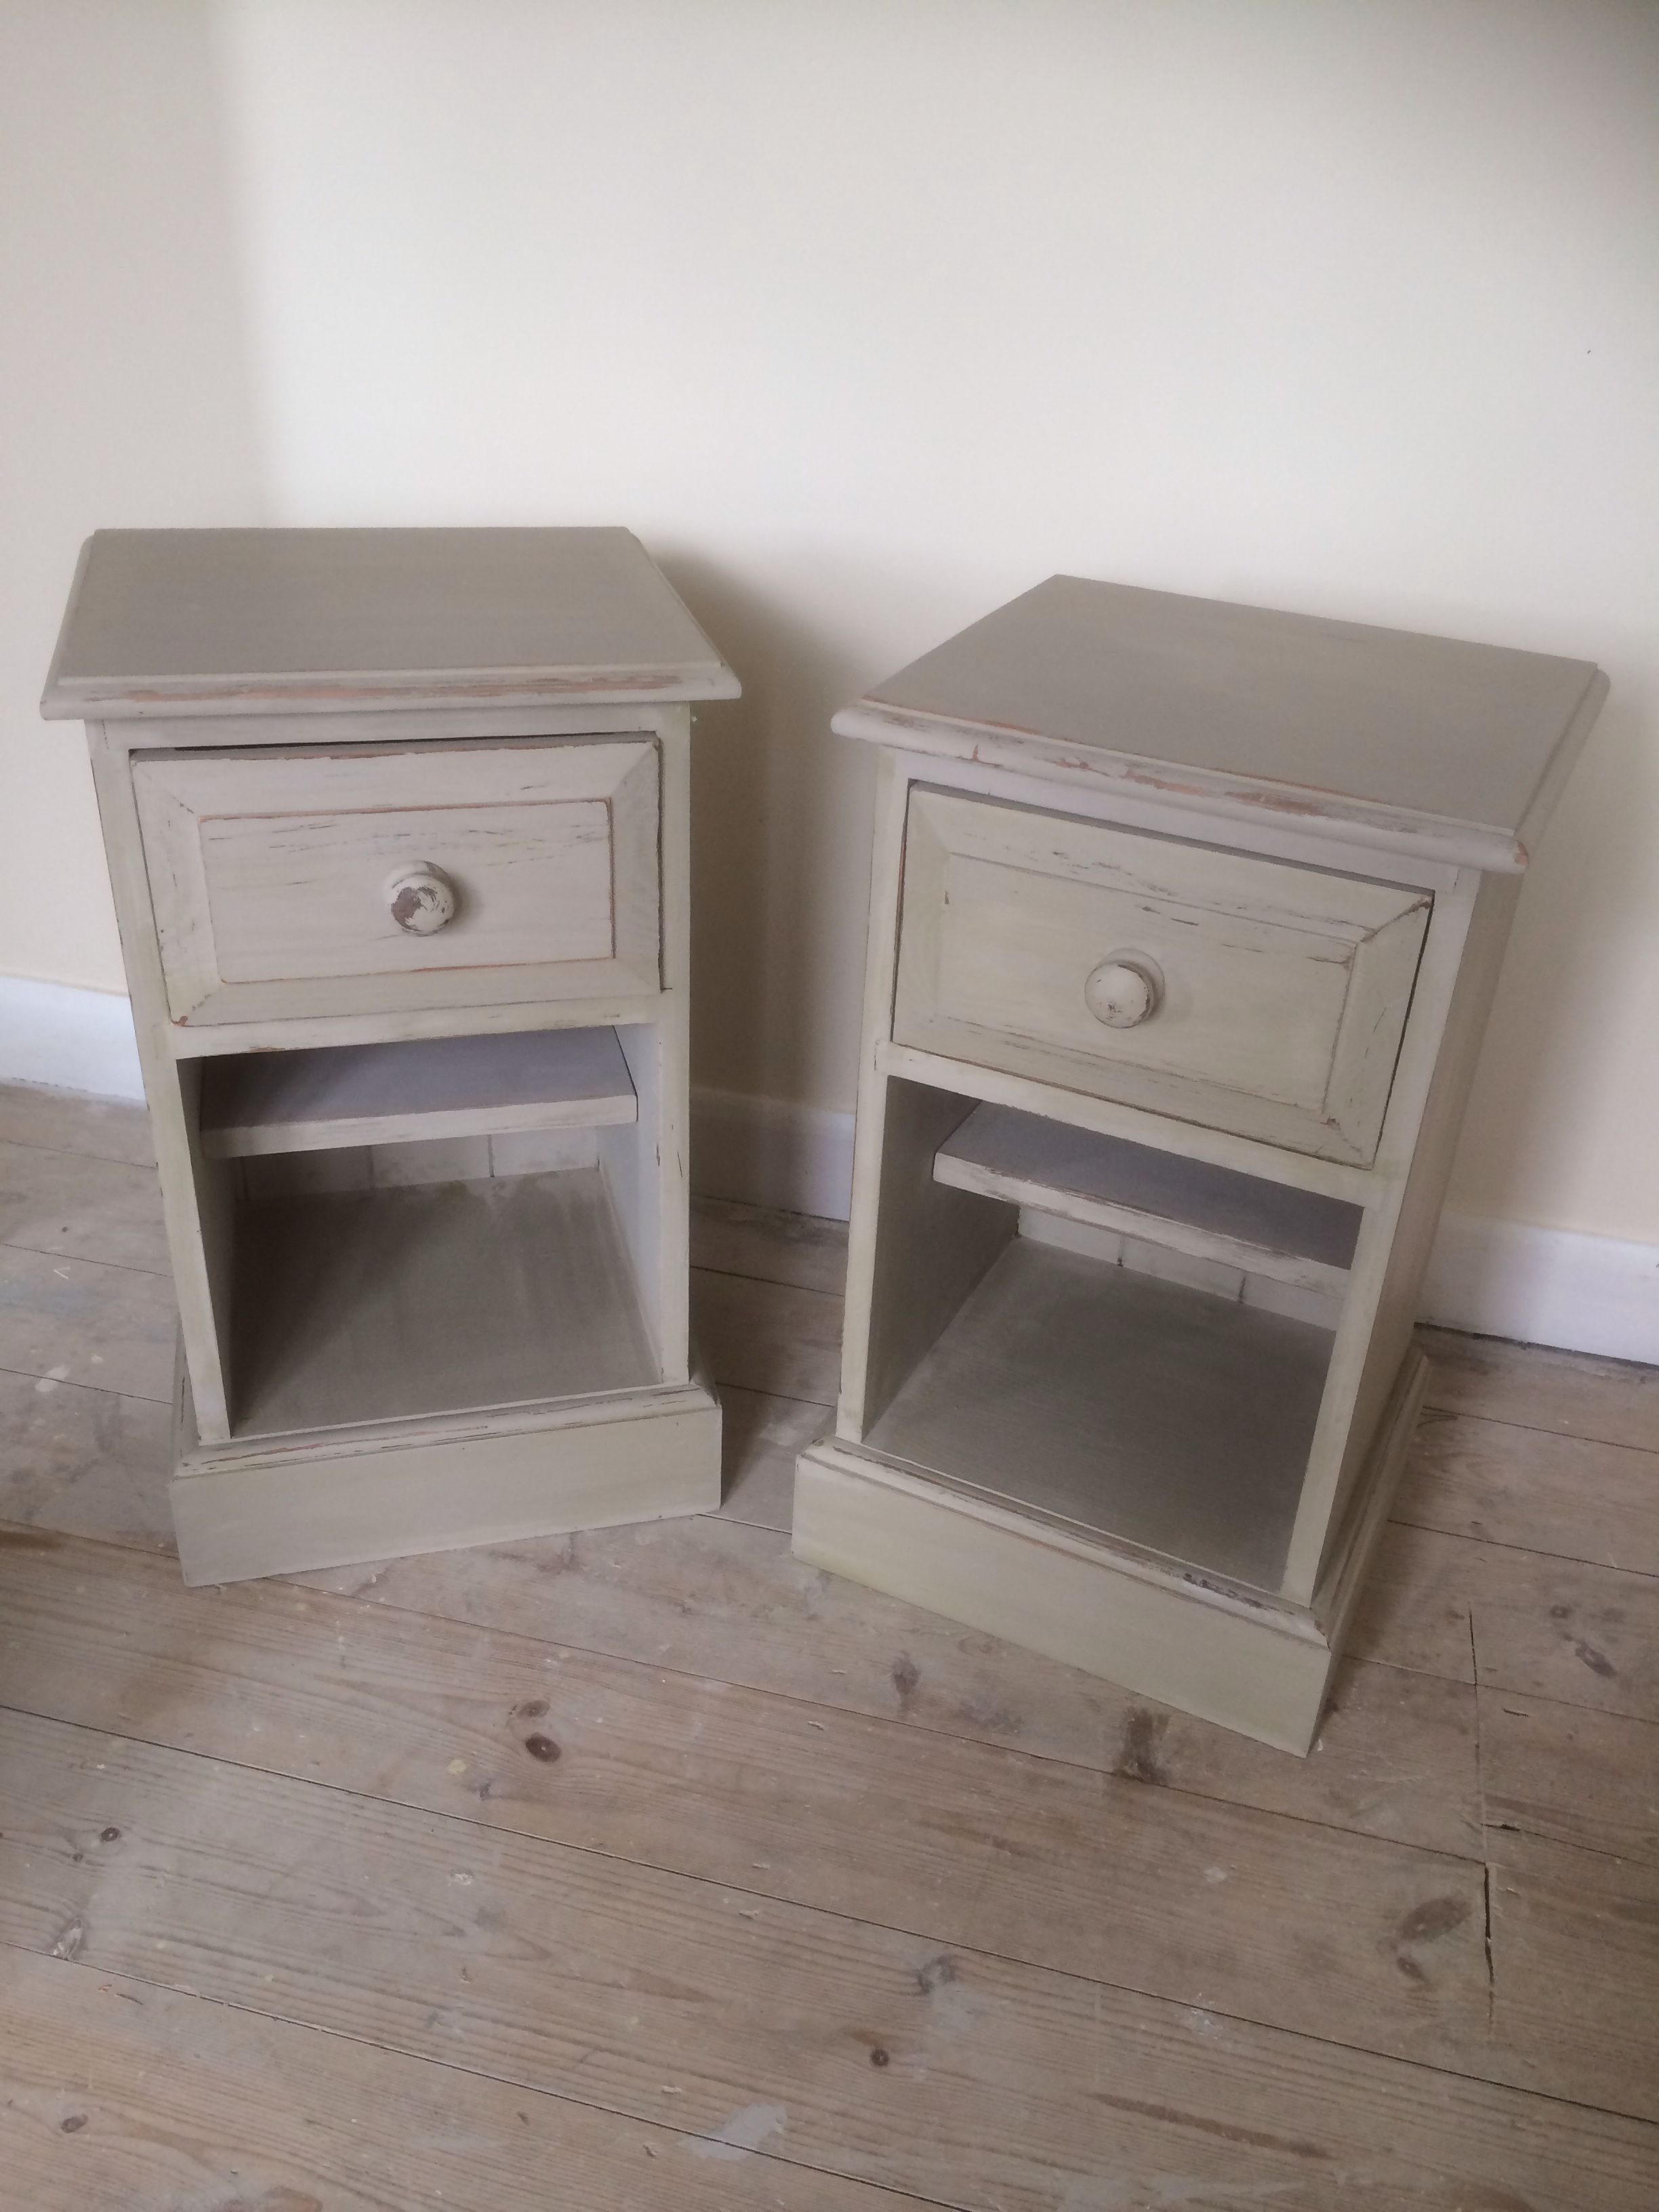 Cream Bedside Tables: My Dark Brown Bedside Tables Are Now Shabby Chic! I Used A